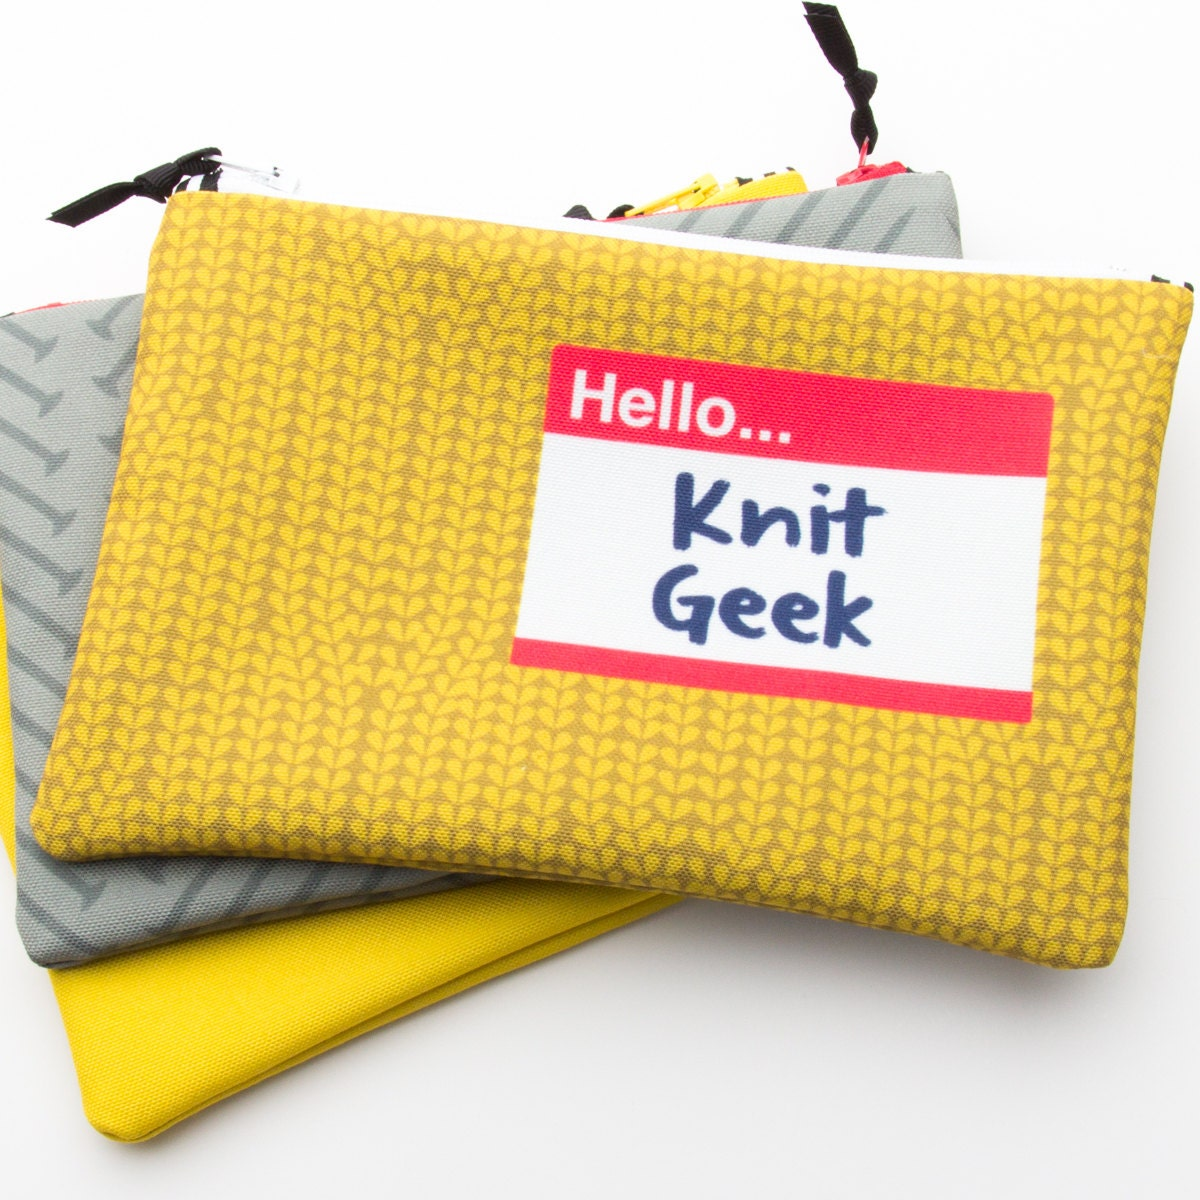 Knitting Puns List : Zipper bag fiber art geek knit knitting project